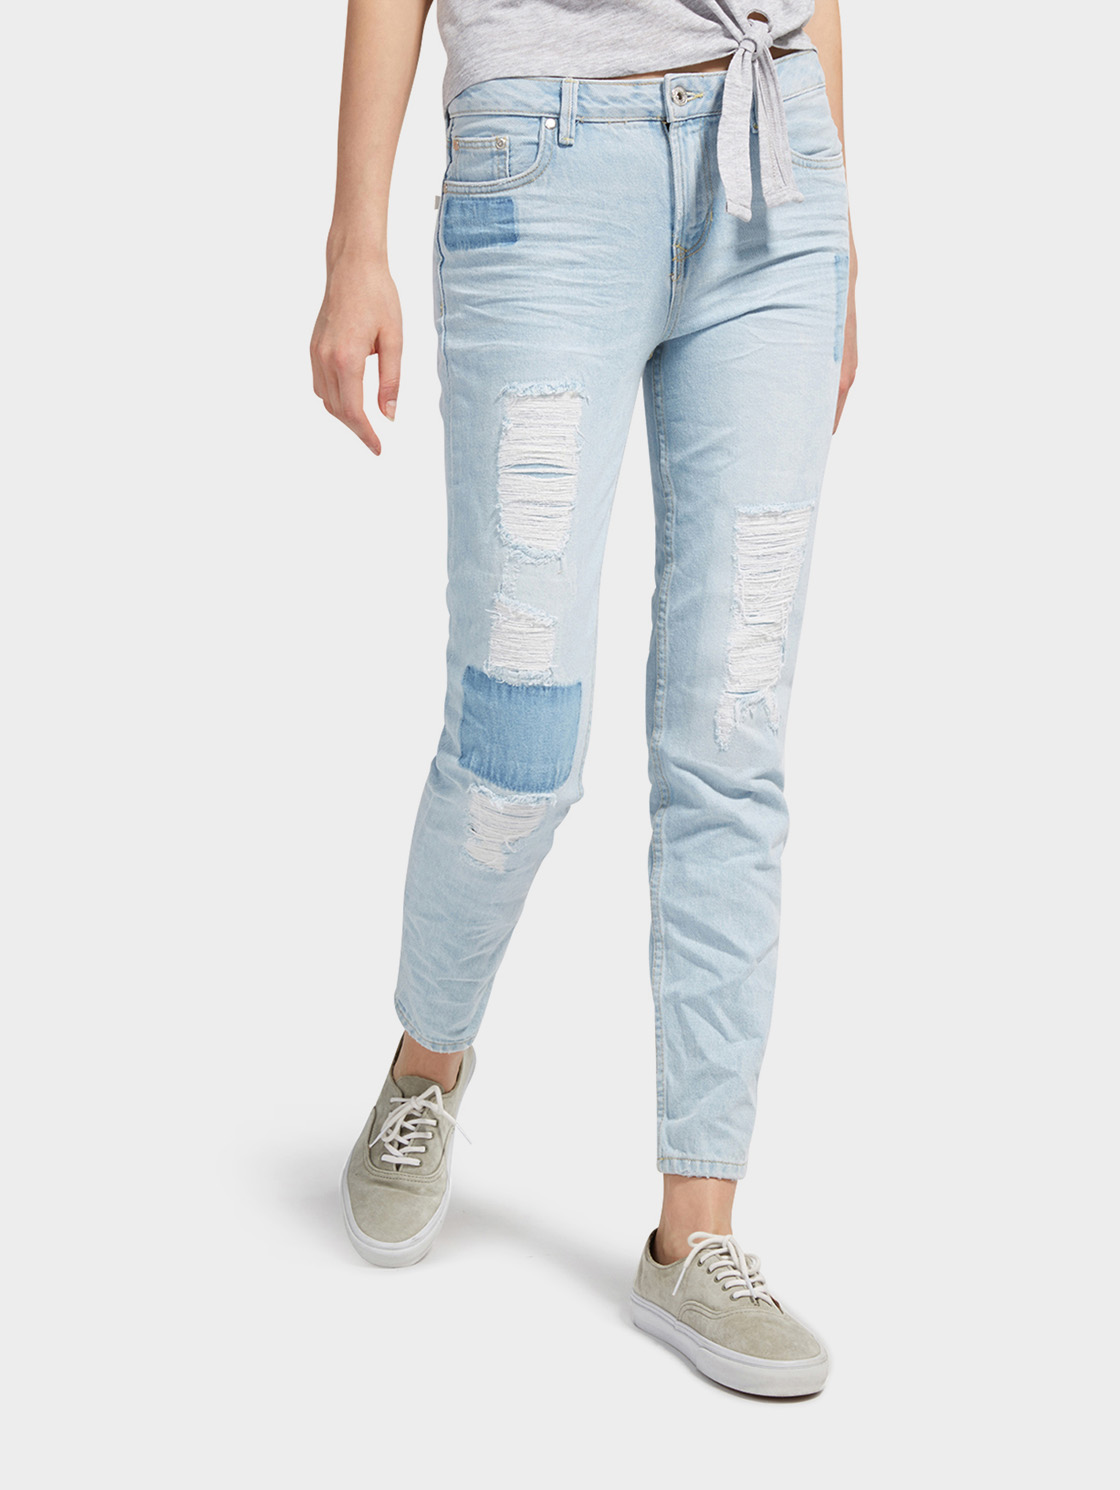 джинсы LIV Tom Tailor Denim джинсы LIV